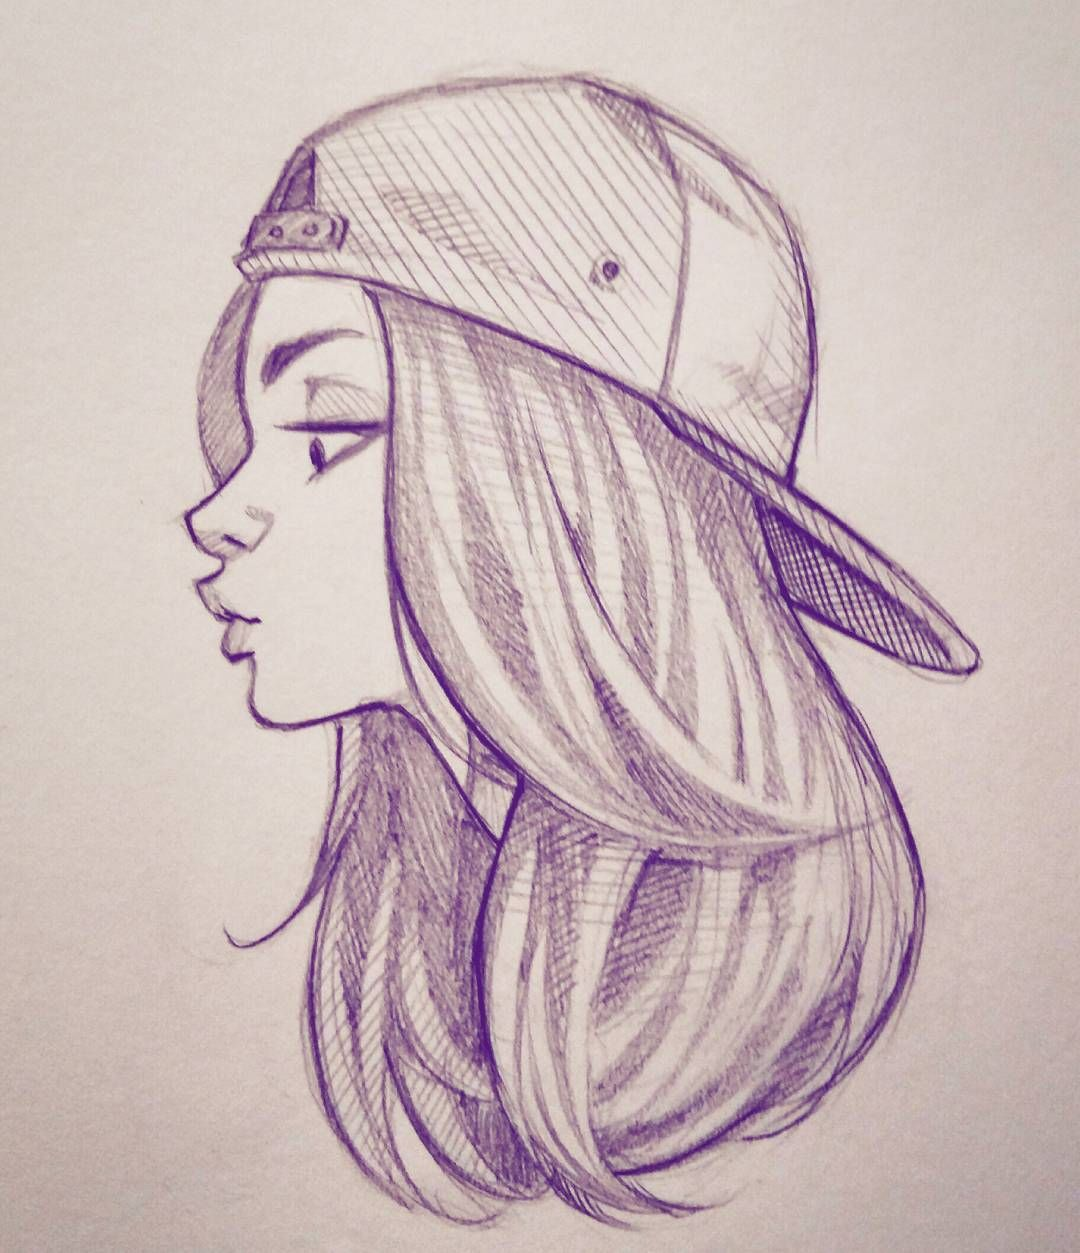 Cameron mark cameronmarkart on instagram squeezing in some sketch time tonight doodle sketch illustration art drawing girl